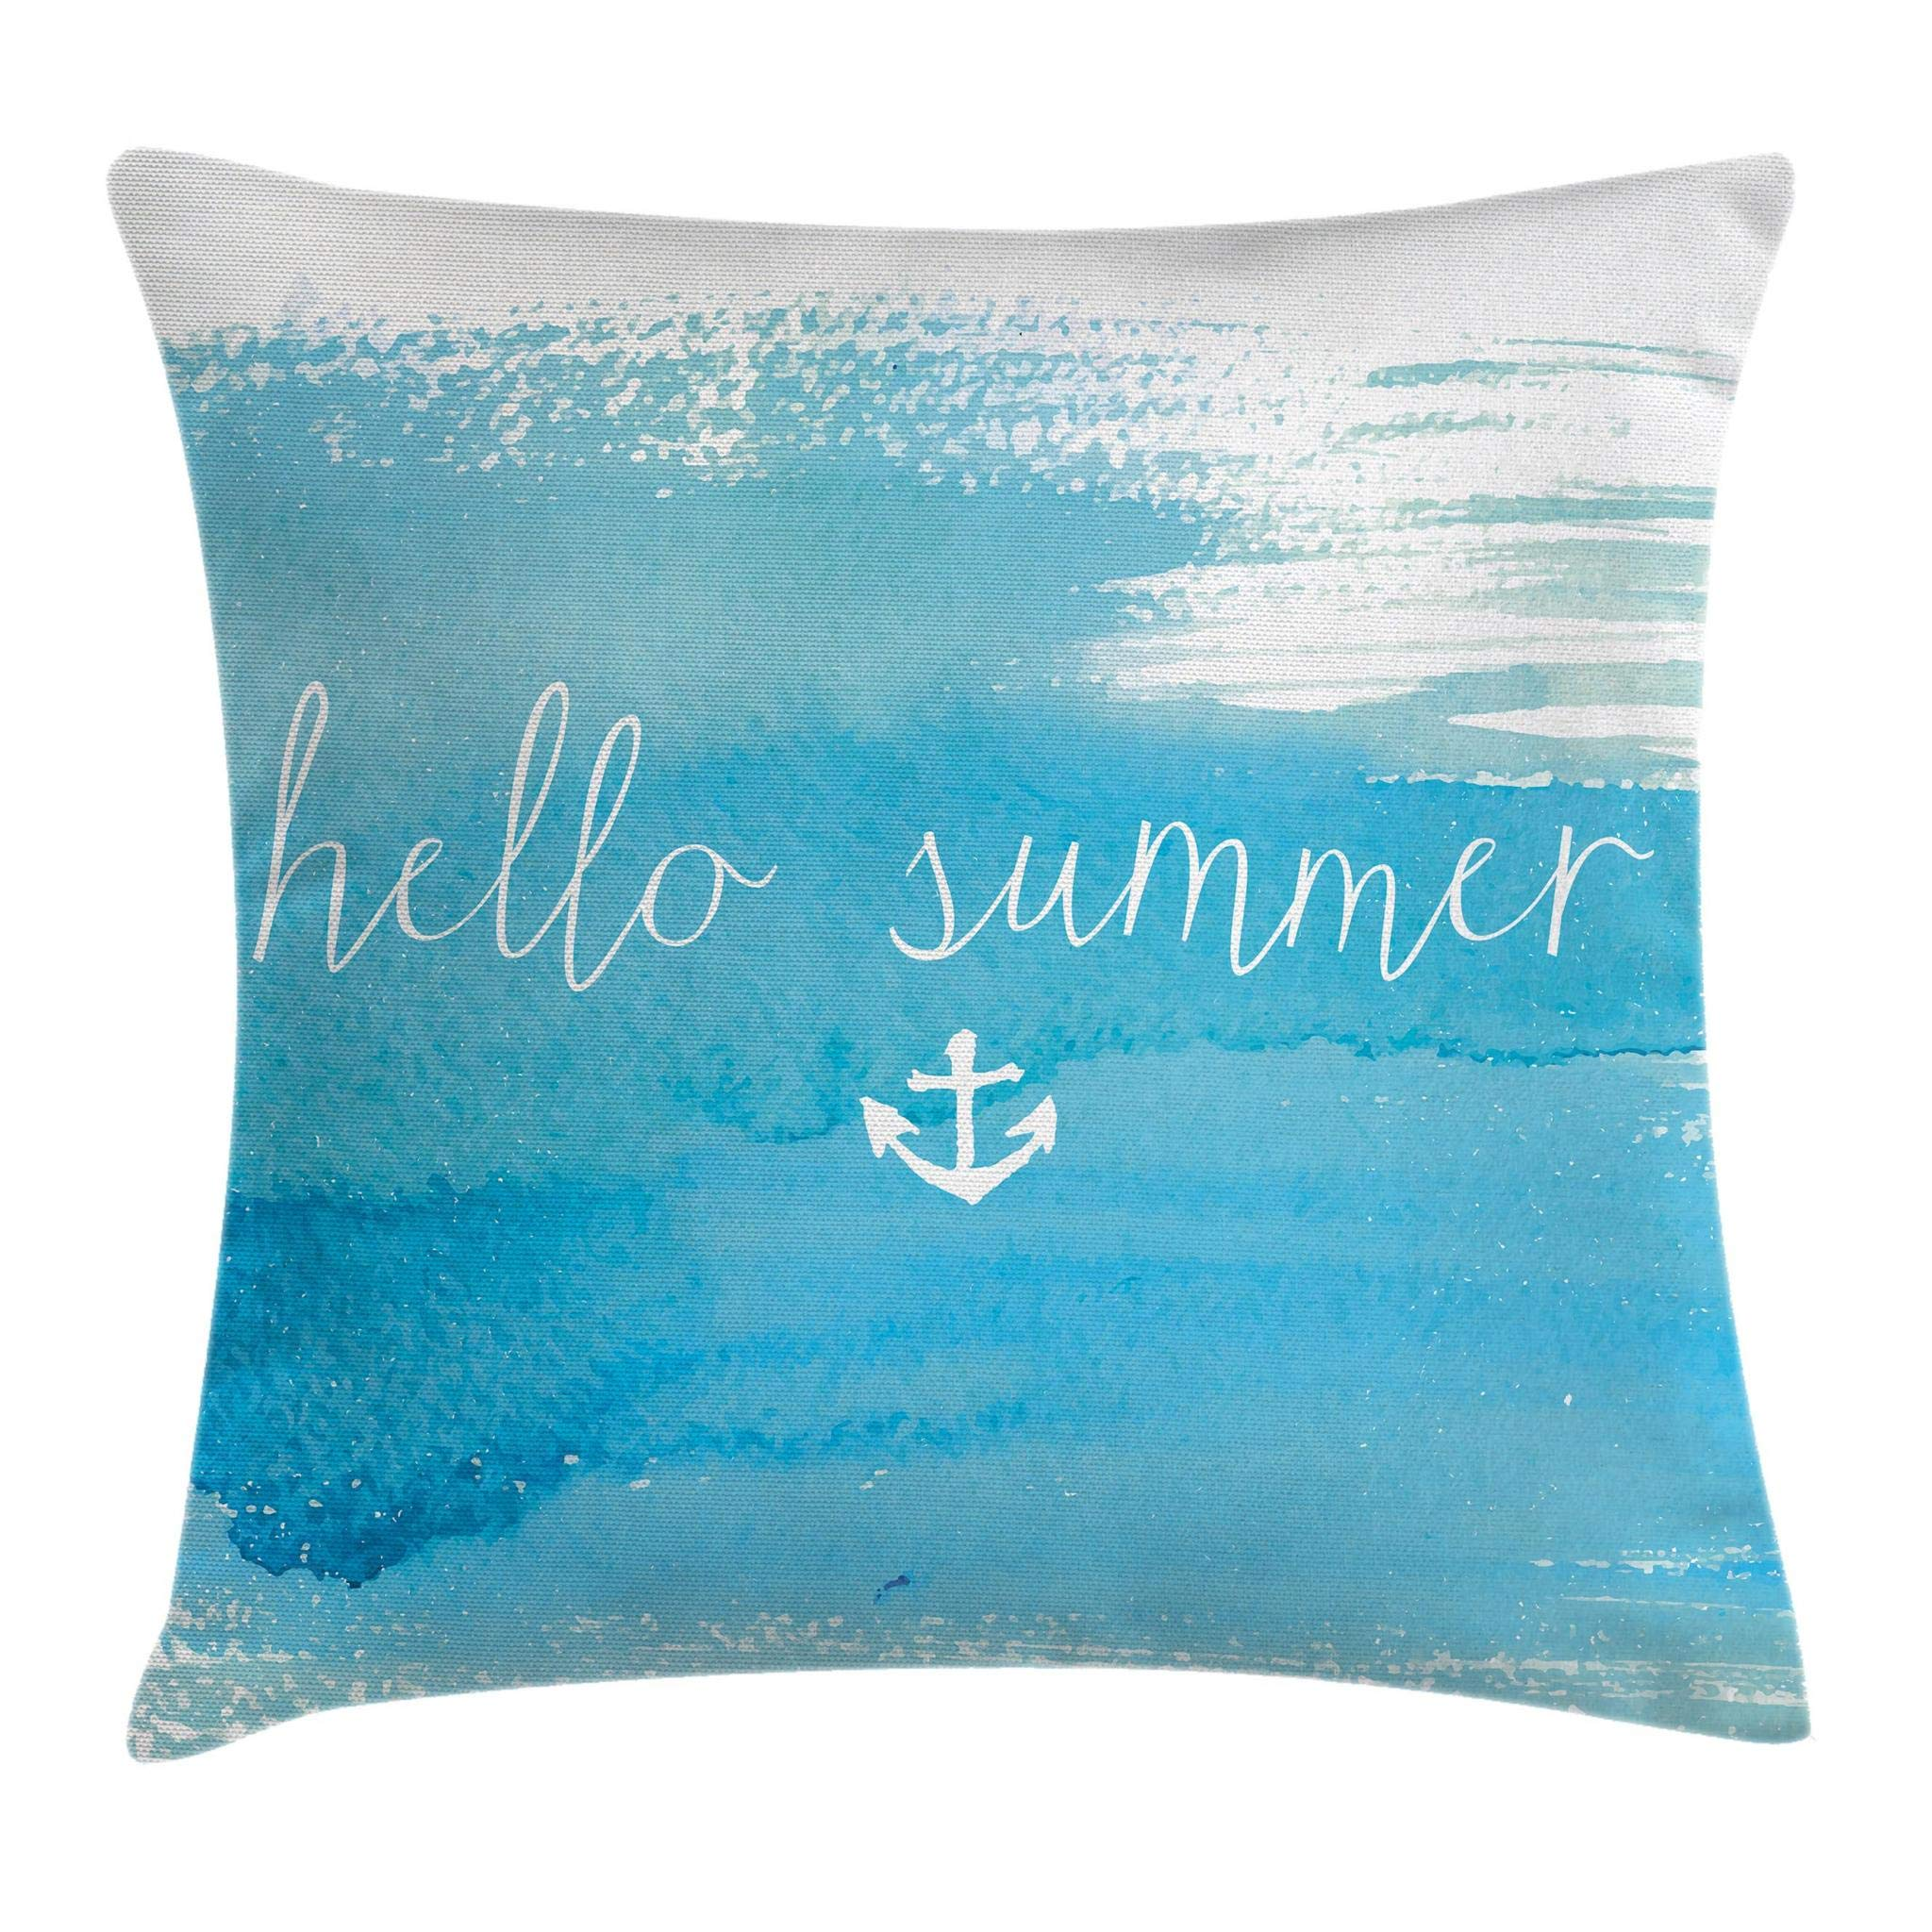 Ambesonne Nautical Decor Throw Pillow Cushion Cover by, Watercolor Paintbrush Backdrop with Hello Summer Quote and Anchor Print, Decorative Square Accent Pillow Case, 18 X 18 Inches, Aqua White